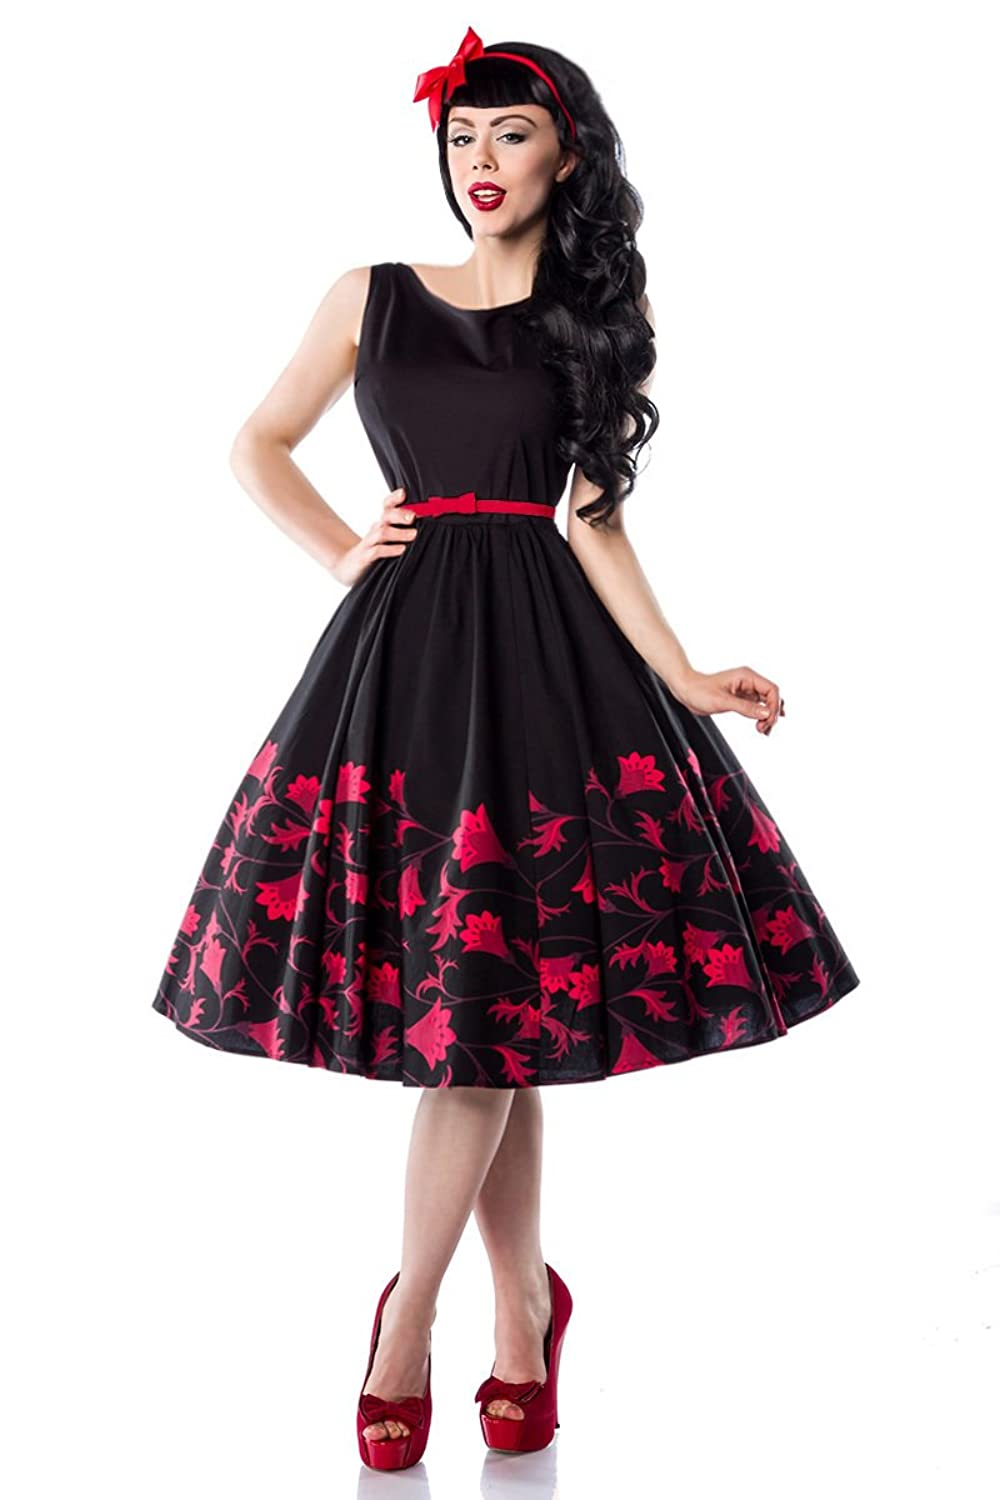 The Evening-Rockabilly 50s Fifties STYLE Black / Red